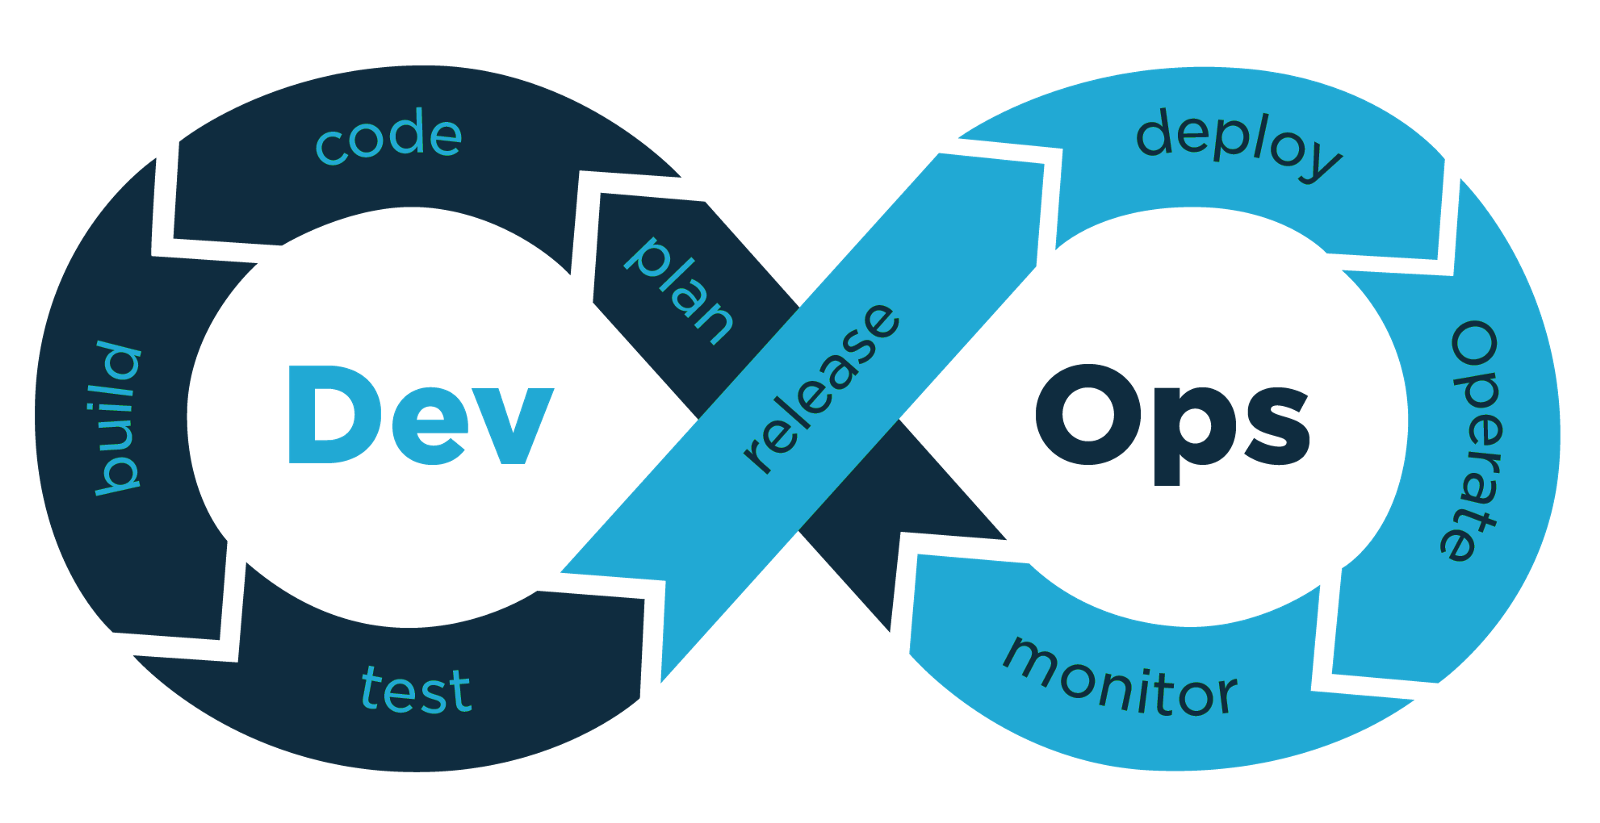 Our Devops Development Service includes